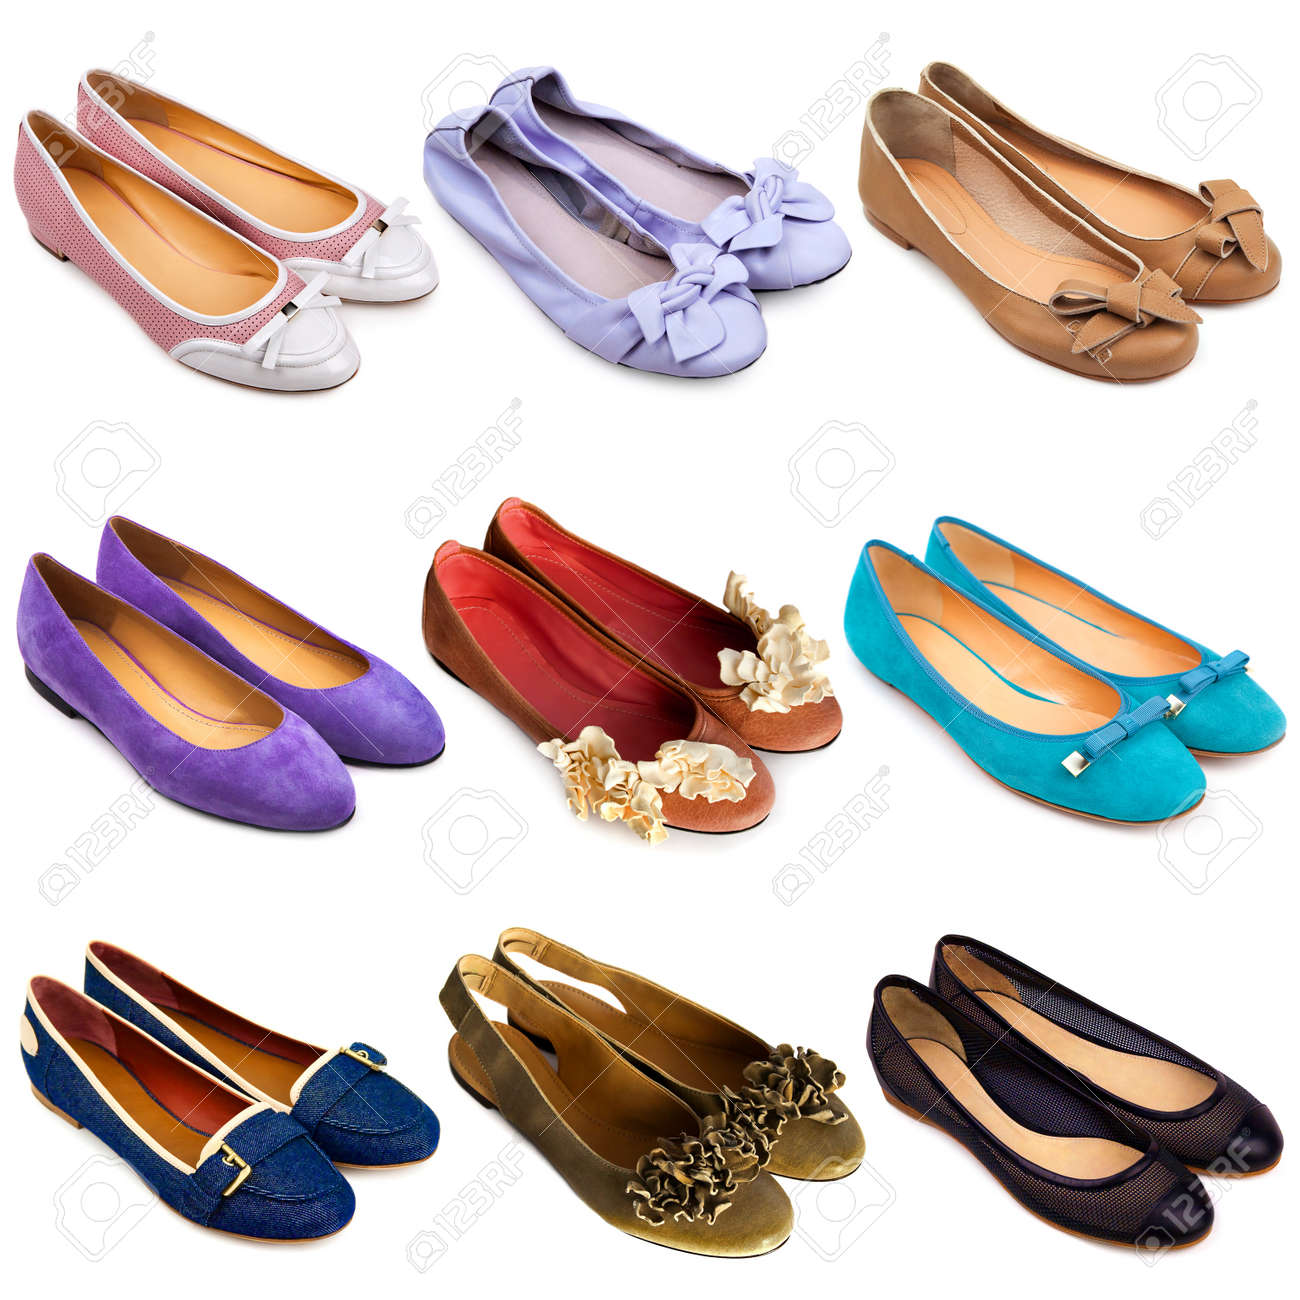 Set Of Multicoloredfemale Ballet Flat Shoes On A White Background Flatshoes 9 Pieces Stock Photo